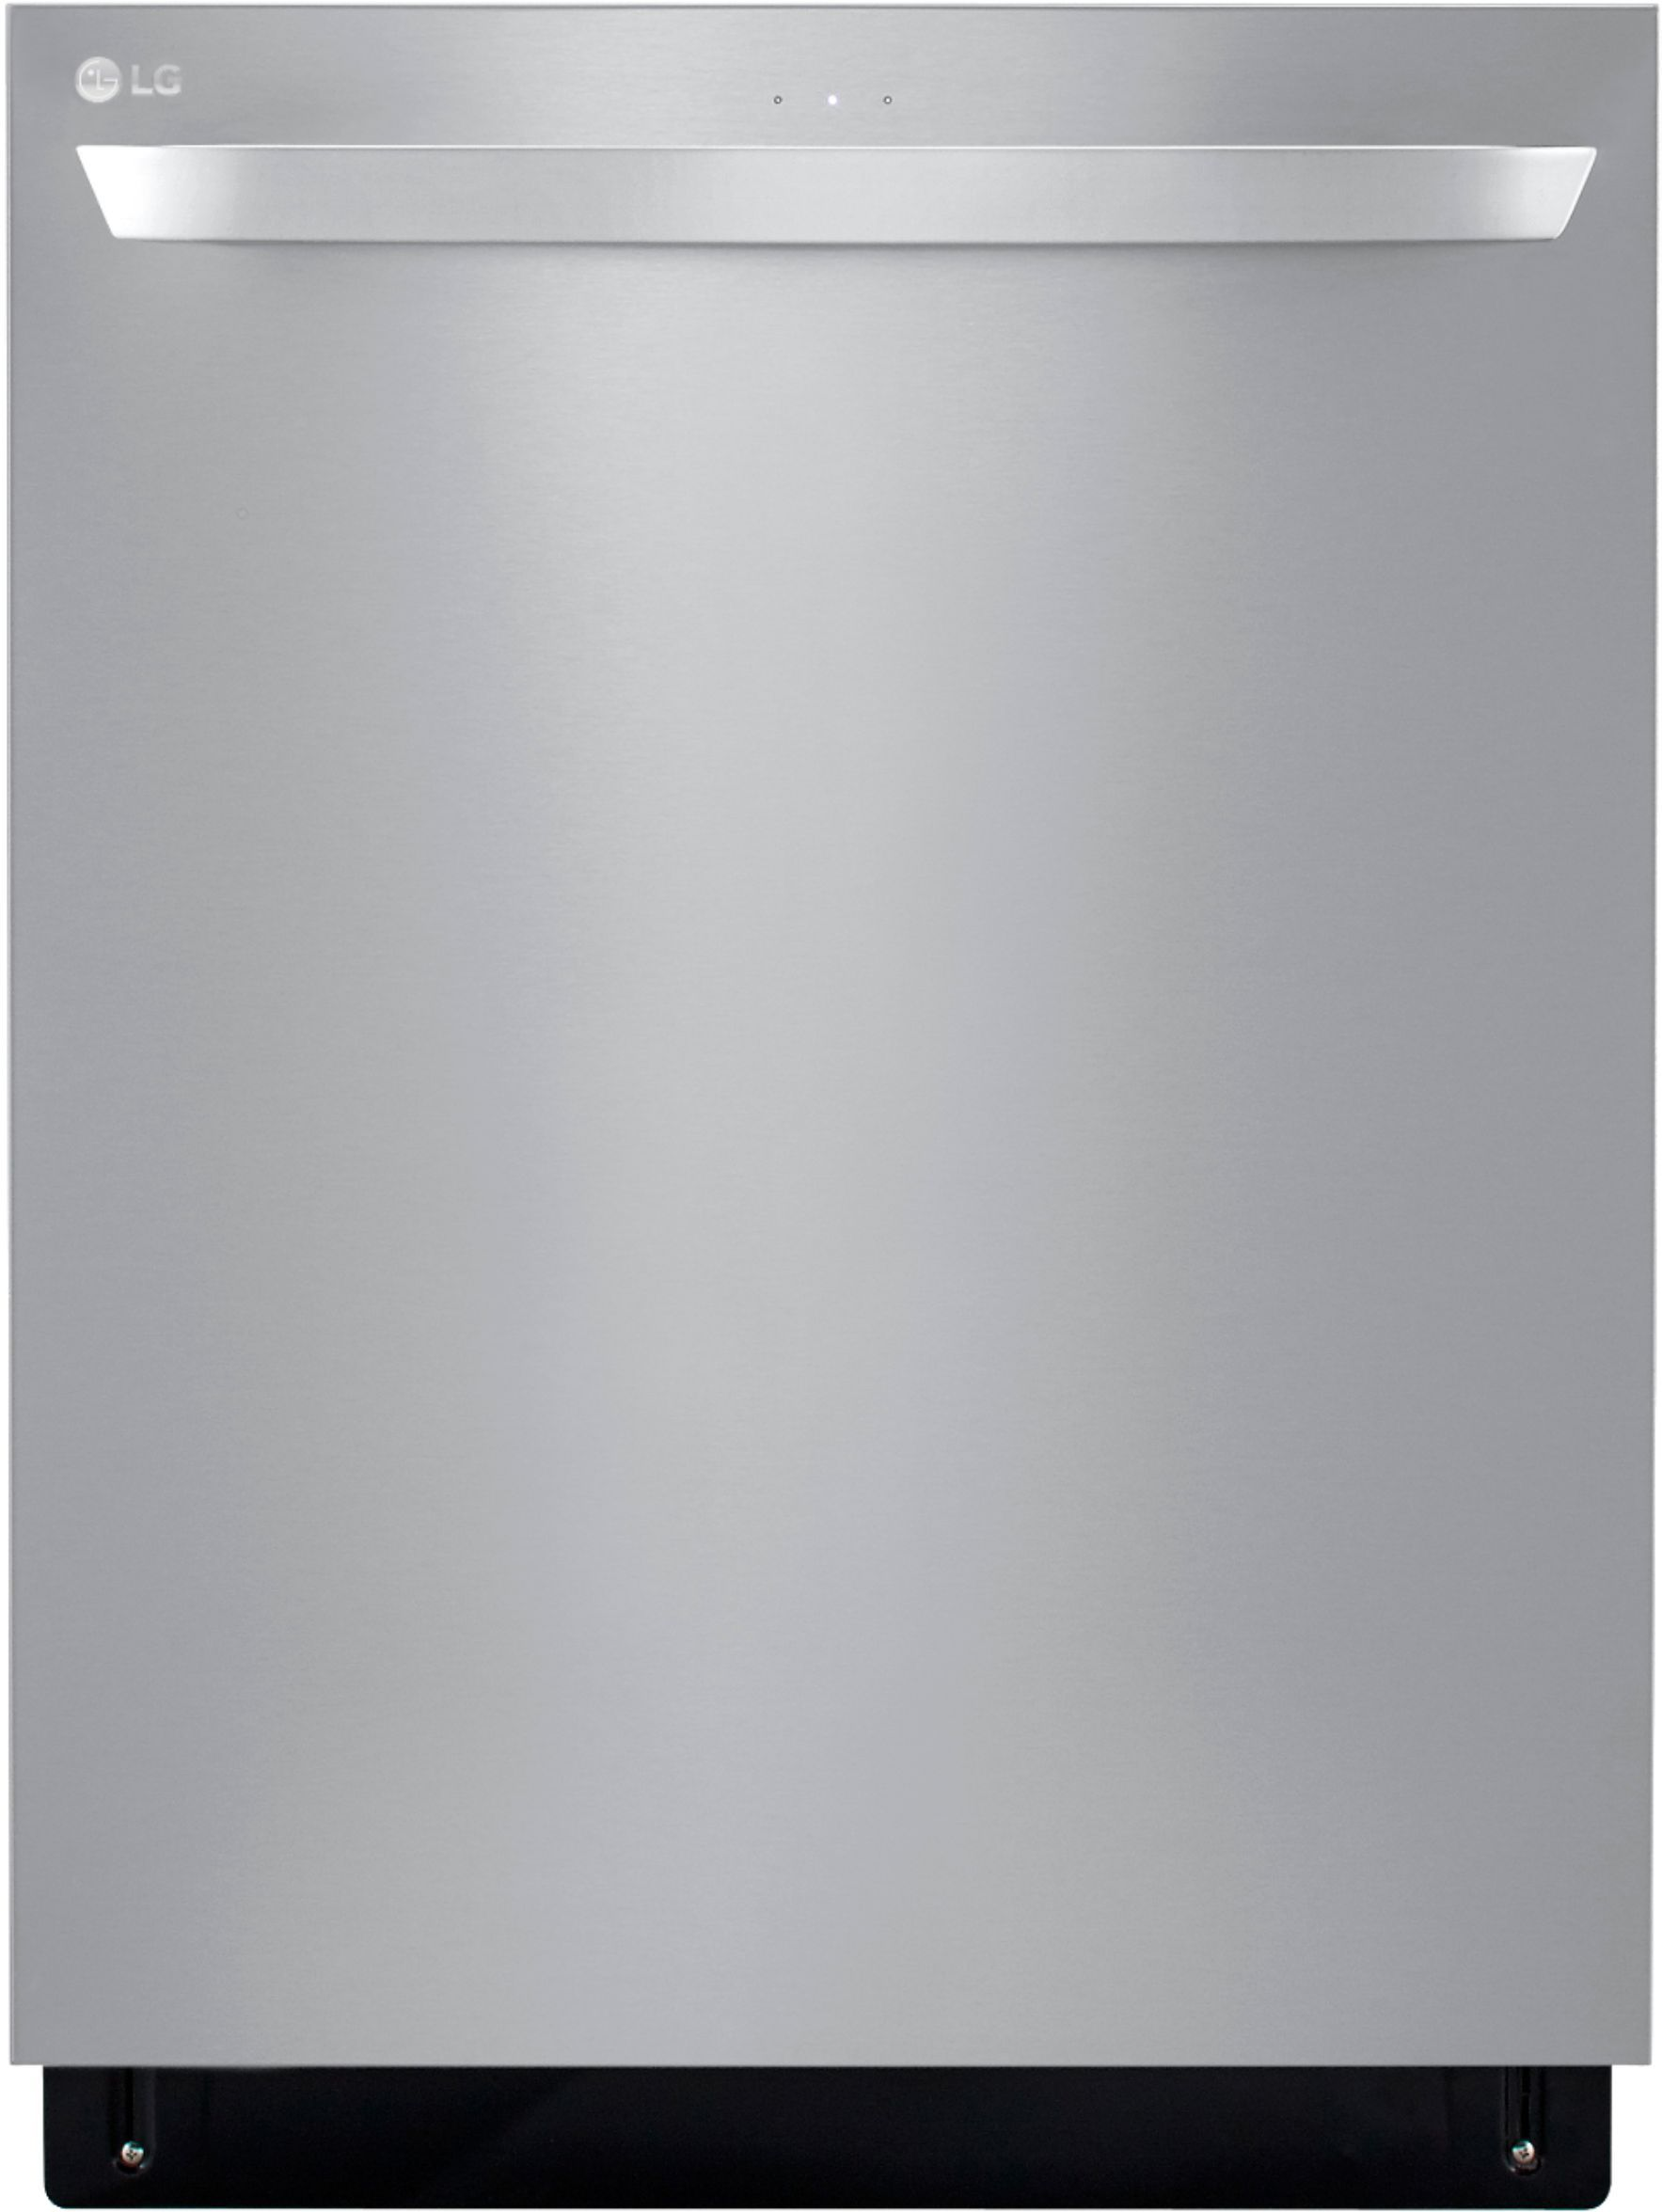 Best Buy Lg 24 Top Control Built In Smart Wifi Enabled Dishwasher With Stainless Steel Tub Quadwash And 3rd Rack Stainless Steel Ldt5678st Steel Tub Integrated Dishwasher Built In Dishwasher